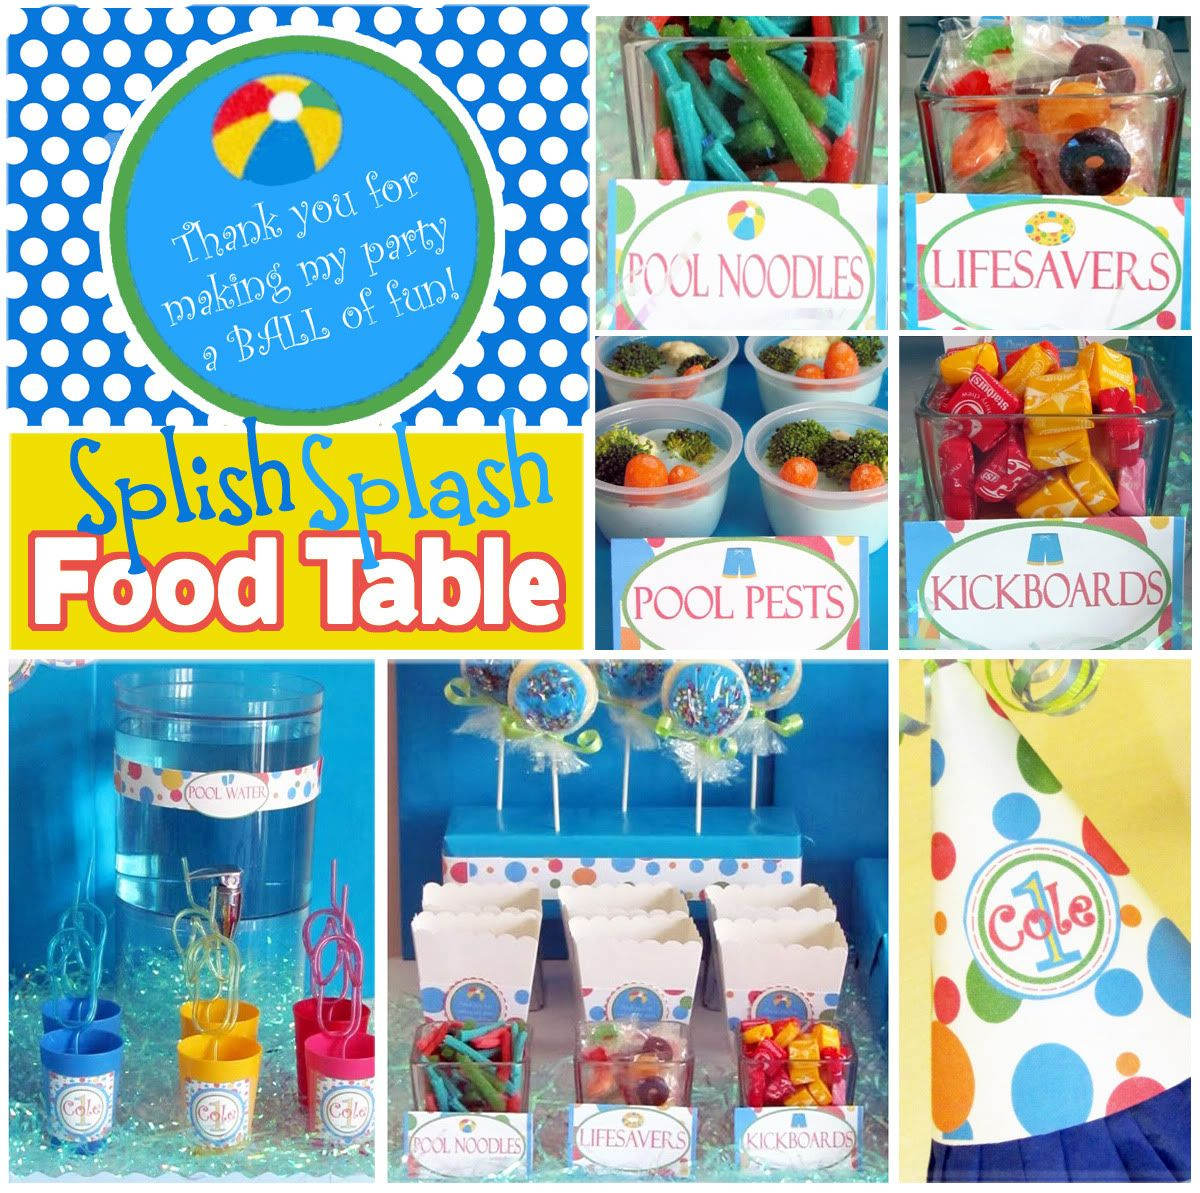 Pool Party Ideas Kids 18 ways to make your kids pool party epic brit co Pool Party Pool Food